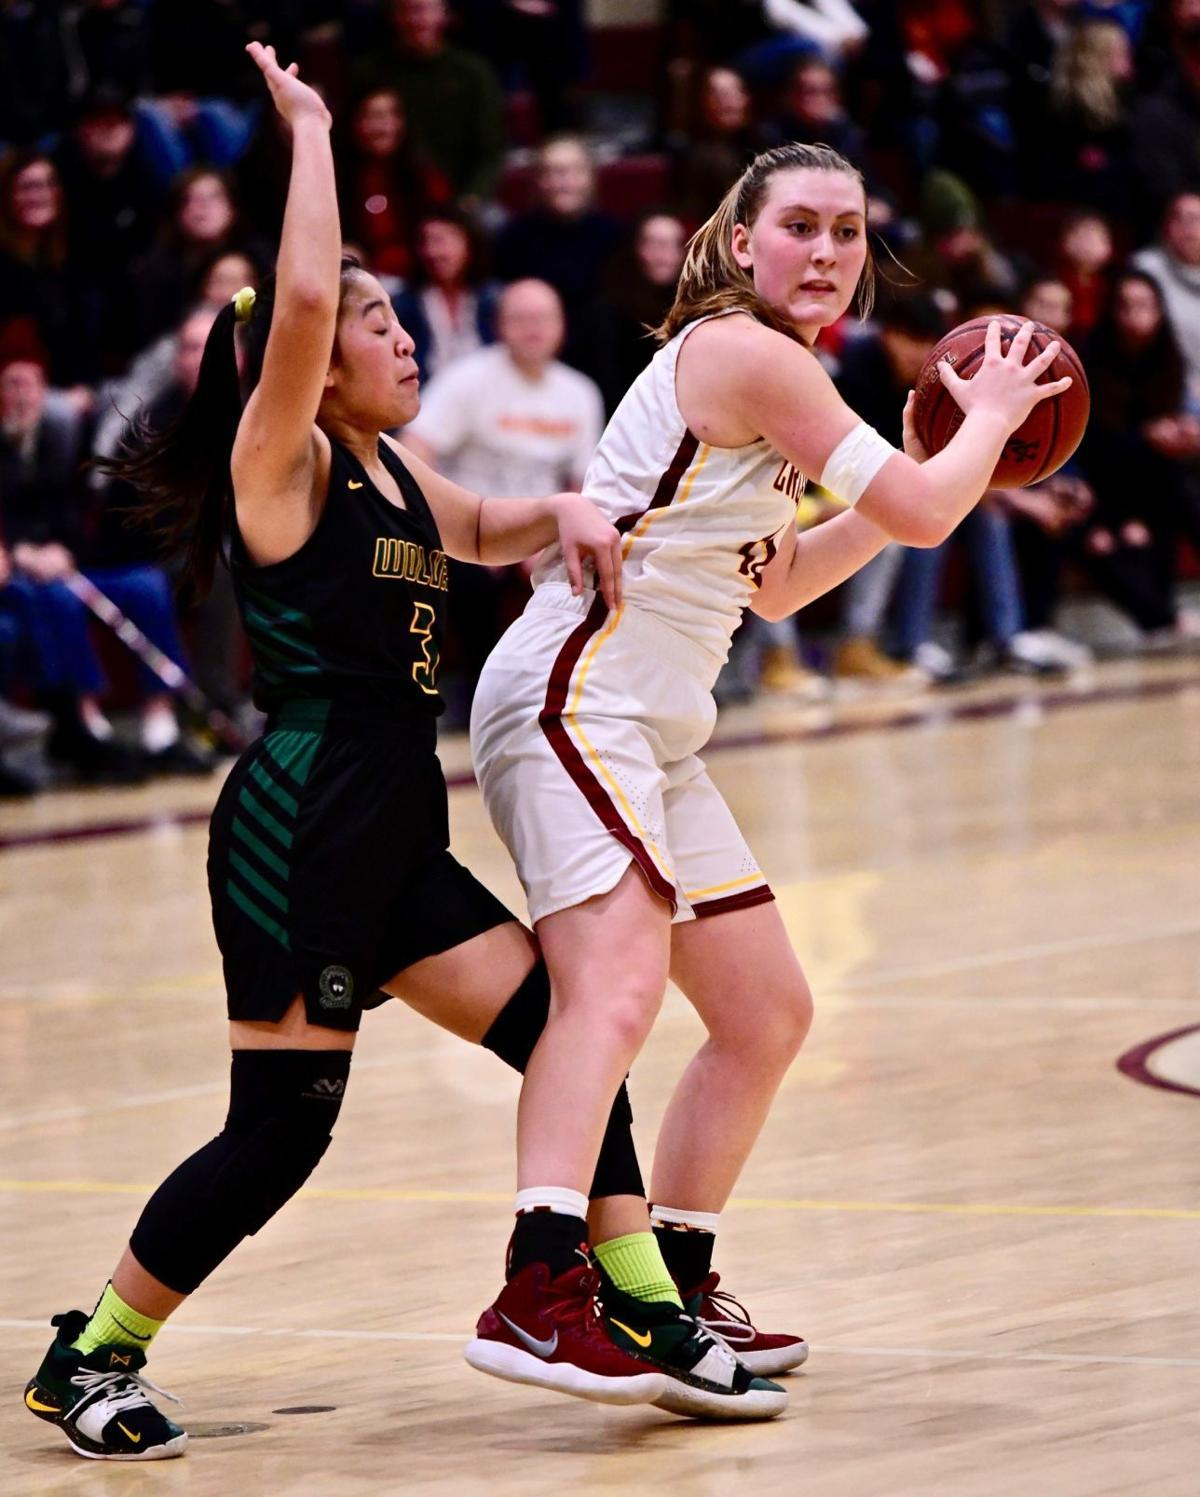 San Ramon Valley at Vintage girls basketball